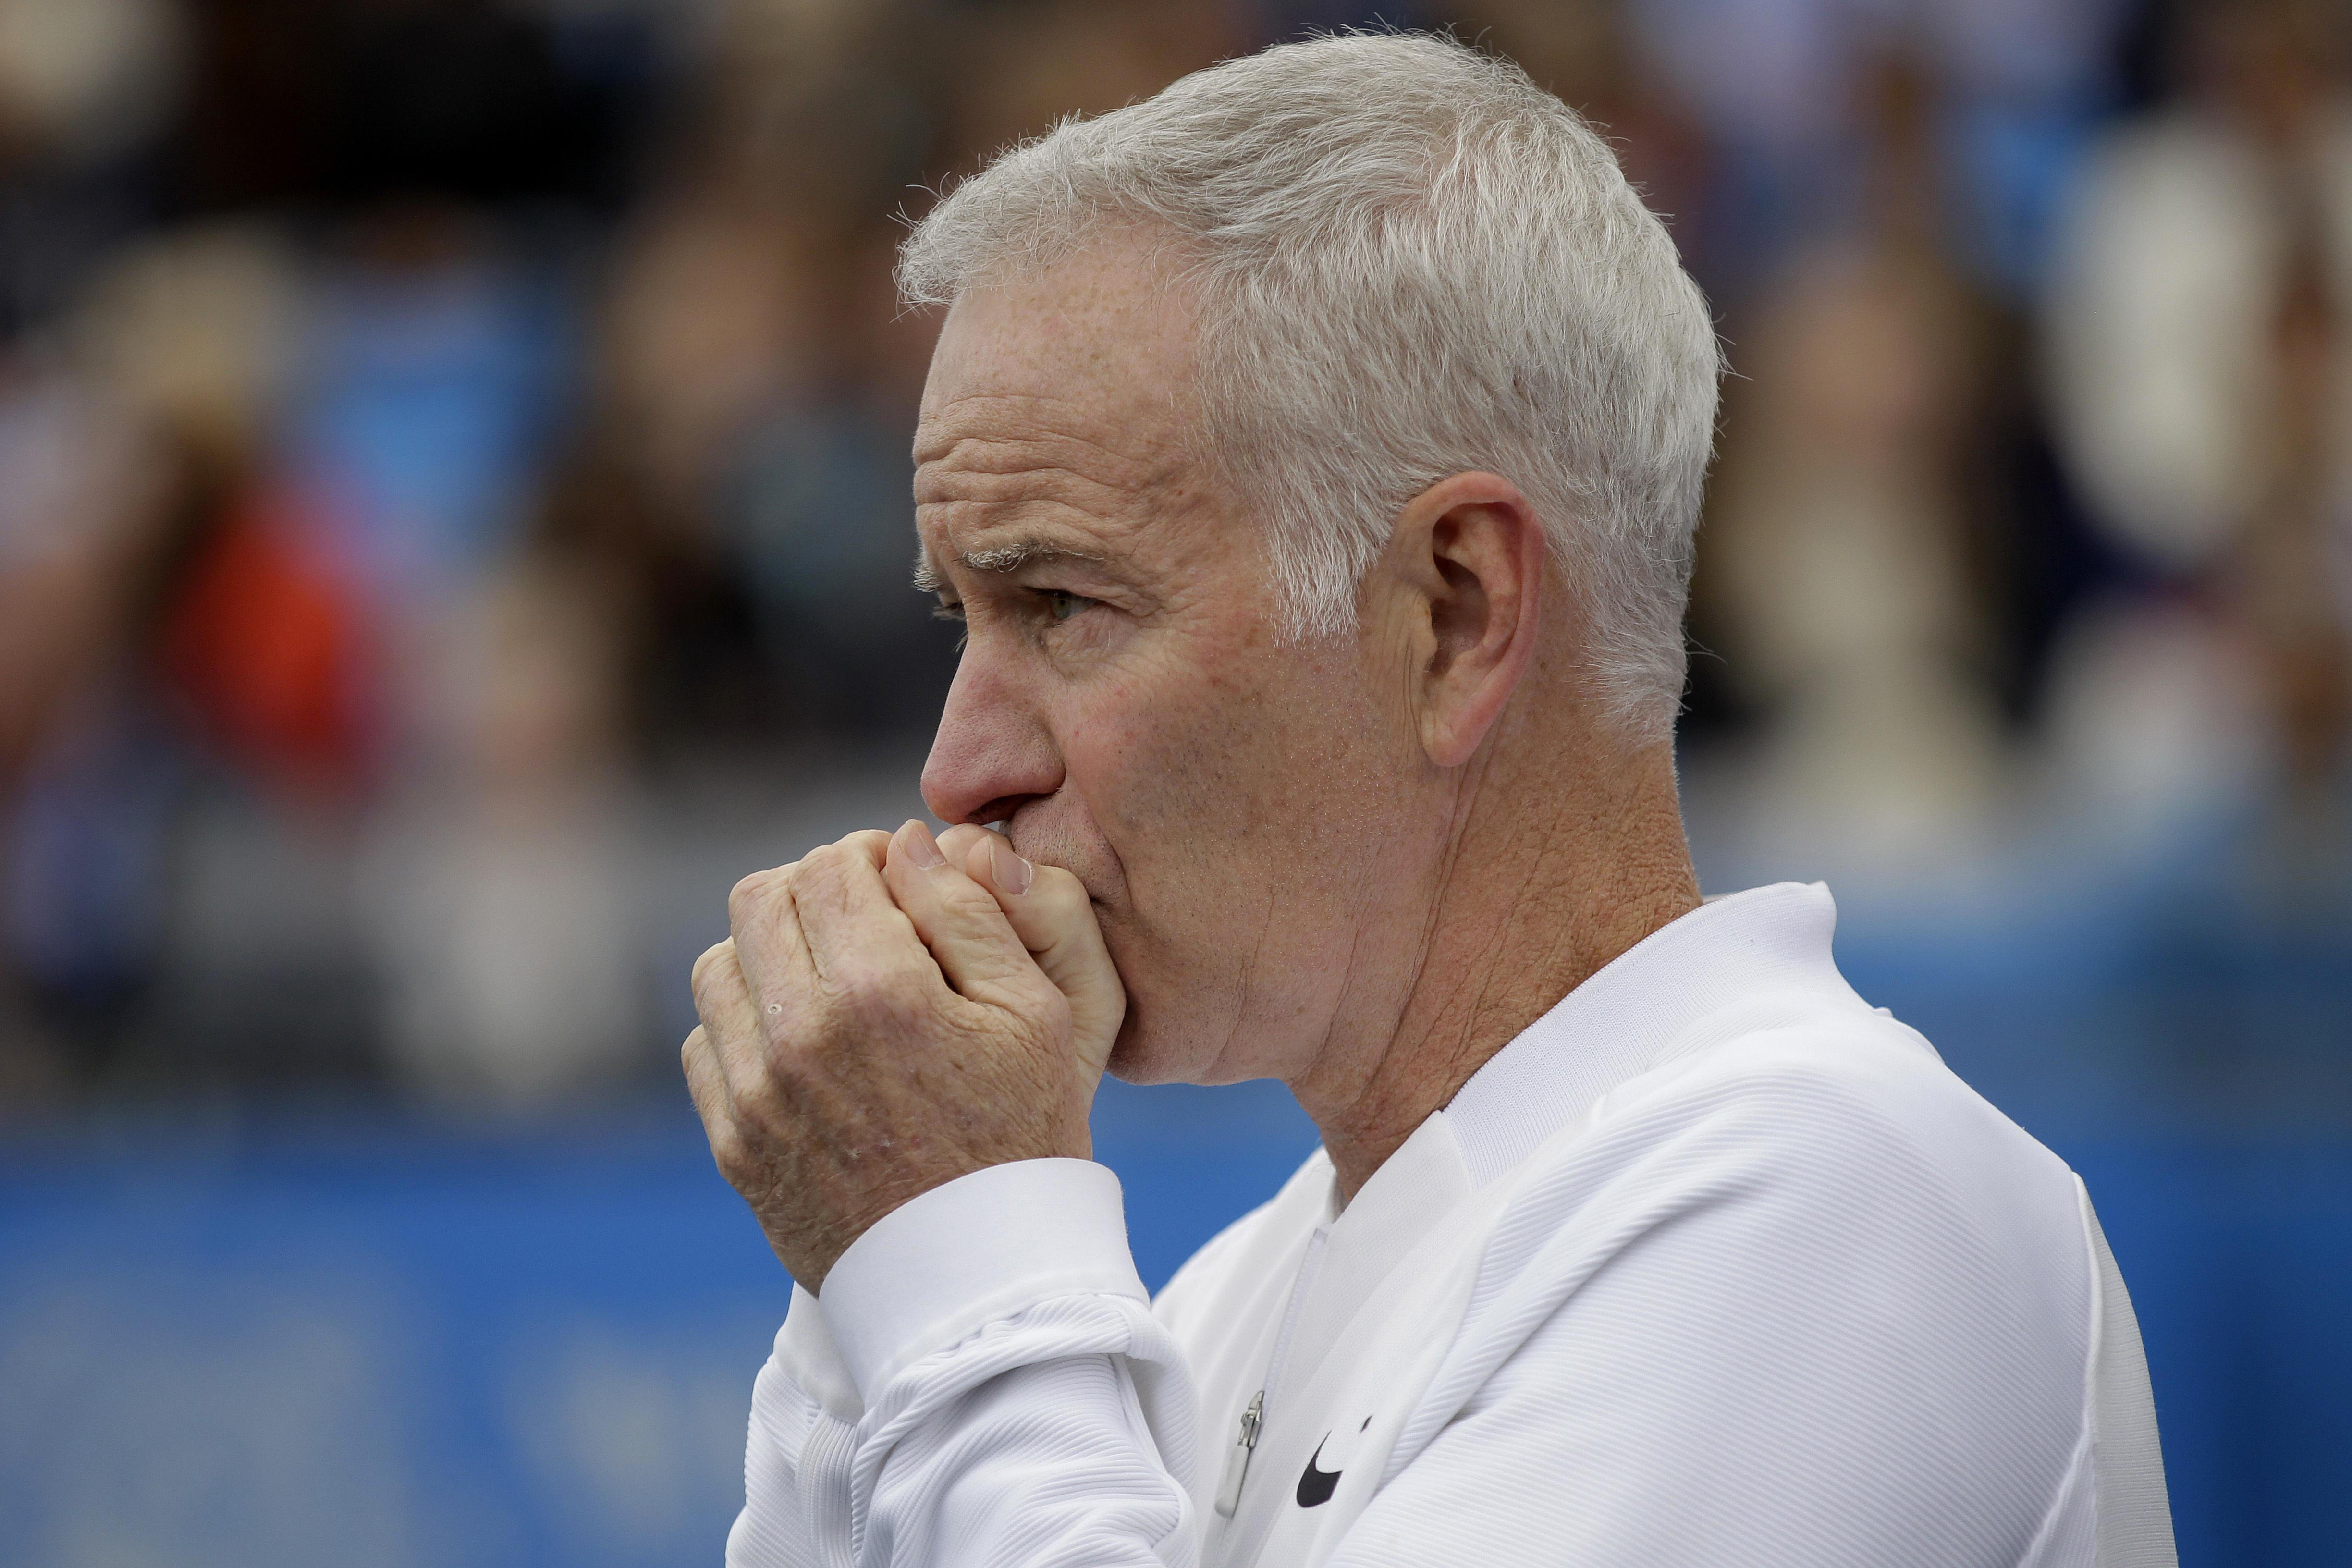 One of Wimbledon's most controversial and loved characters, John McEnroe